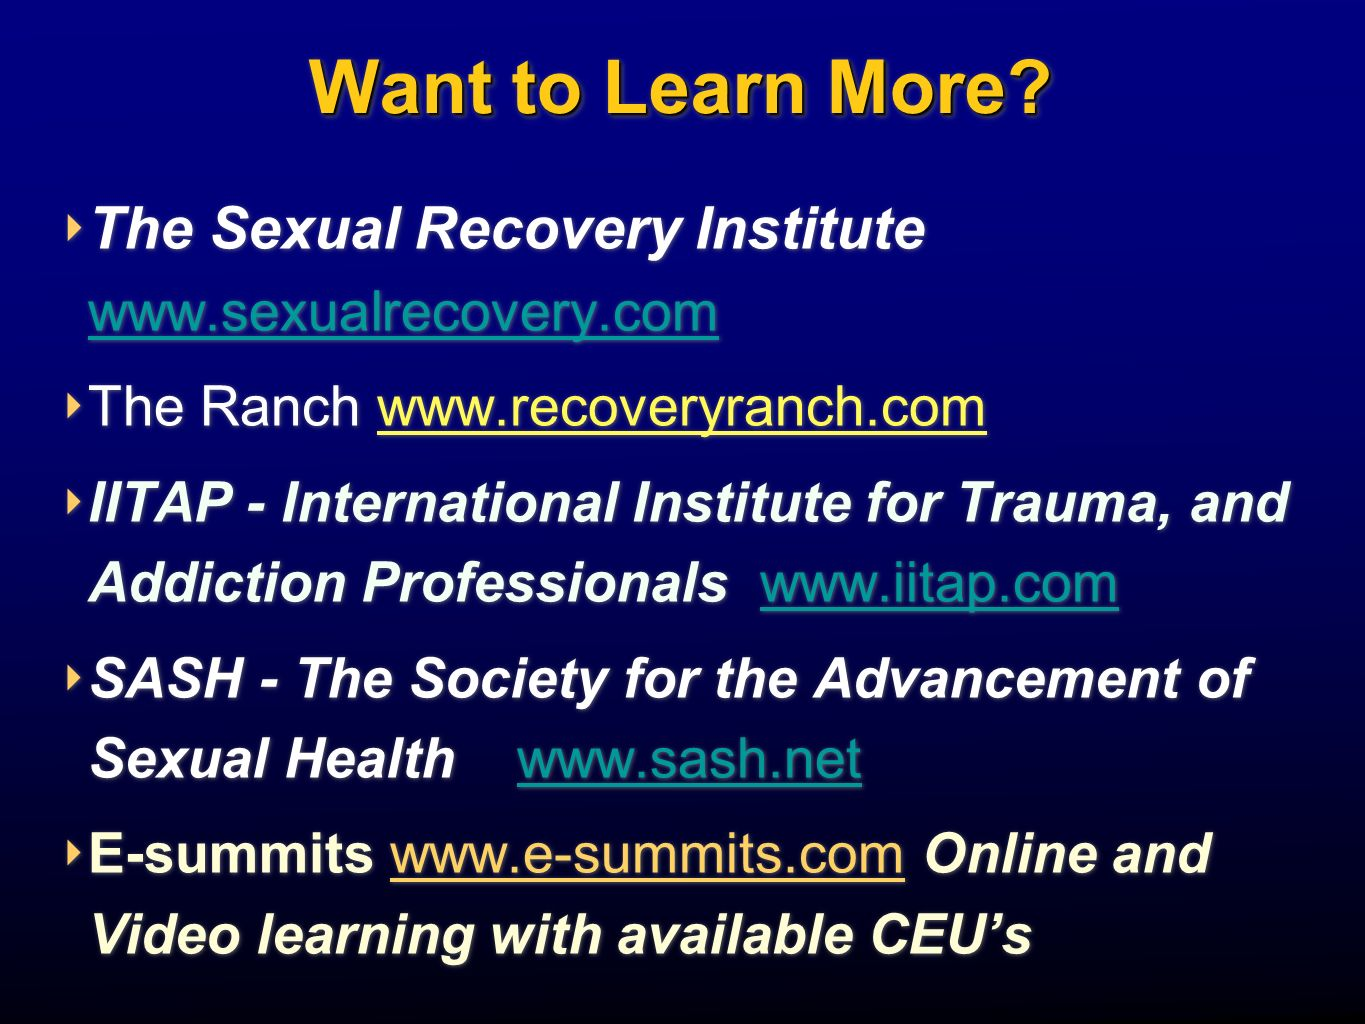 The Clinical Assessment and Treatment of Sex and Porn Addiction Robert Weiss LCSW, CSAT-S Founding Director - The Sexual Recovery Institute Director of Sexual Disorder Programs, Elements Behavioral Health Promises, The Ranch & The Sexual Recovery Institute Note: This presentation will demonstrate methods utilized to access online sexual experiences.